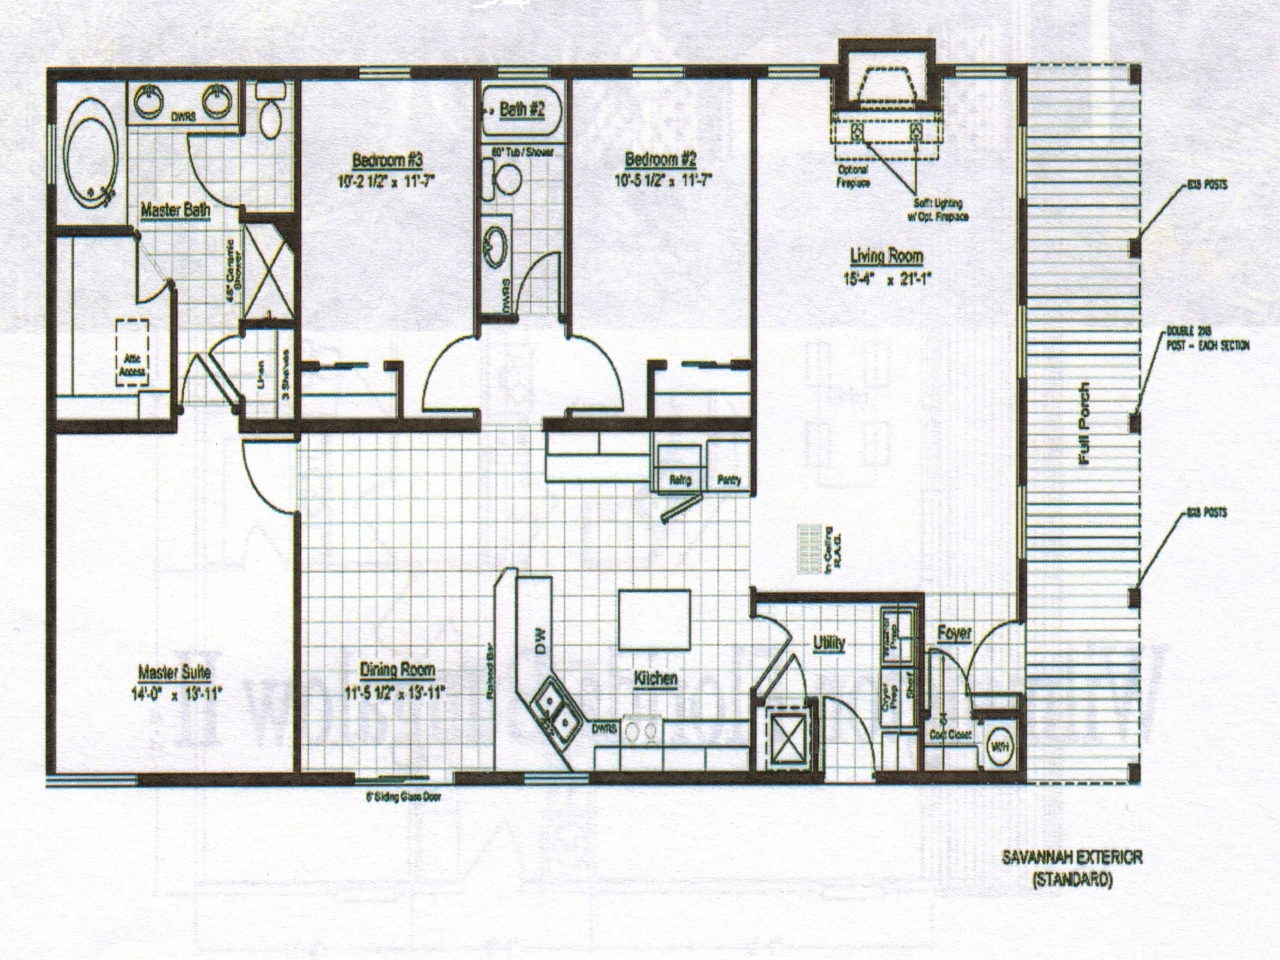 Bungalow Home Design Floor Plans Bungalow House Plans With